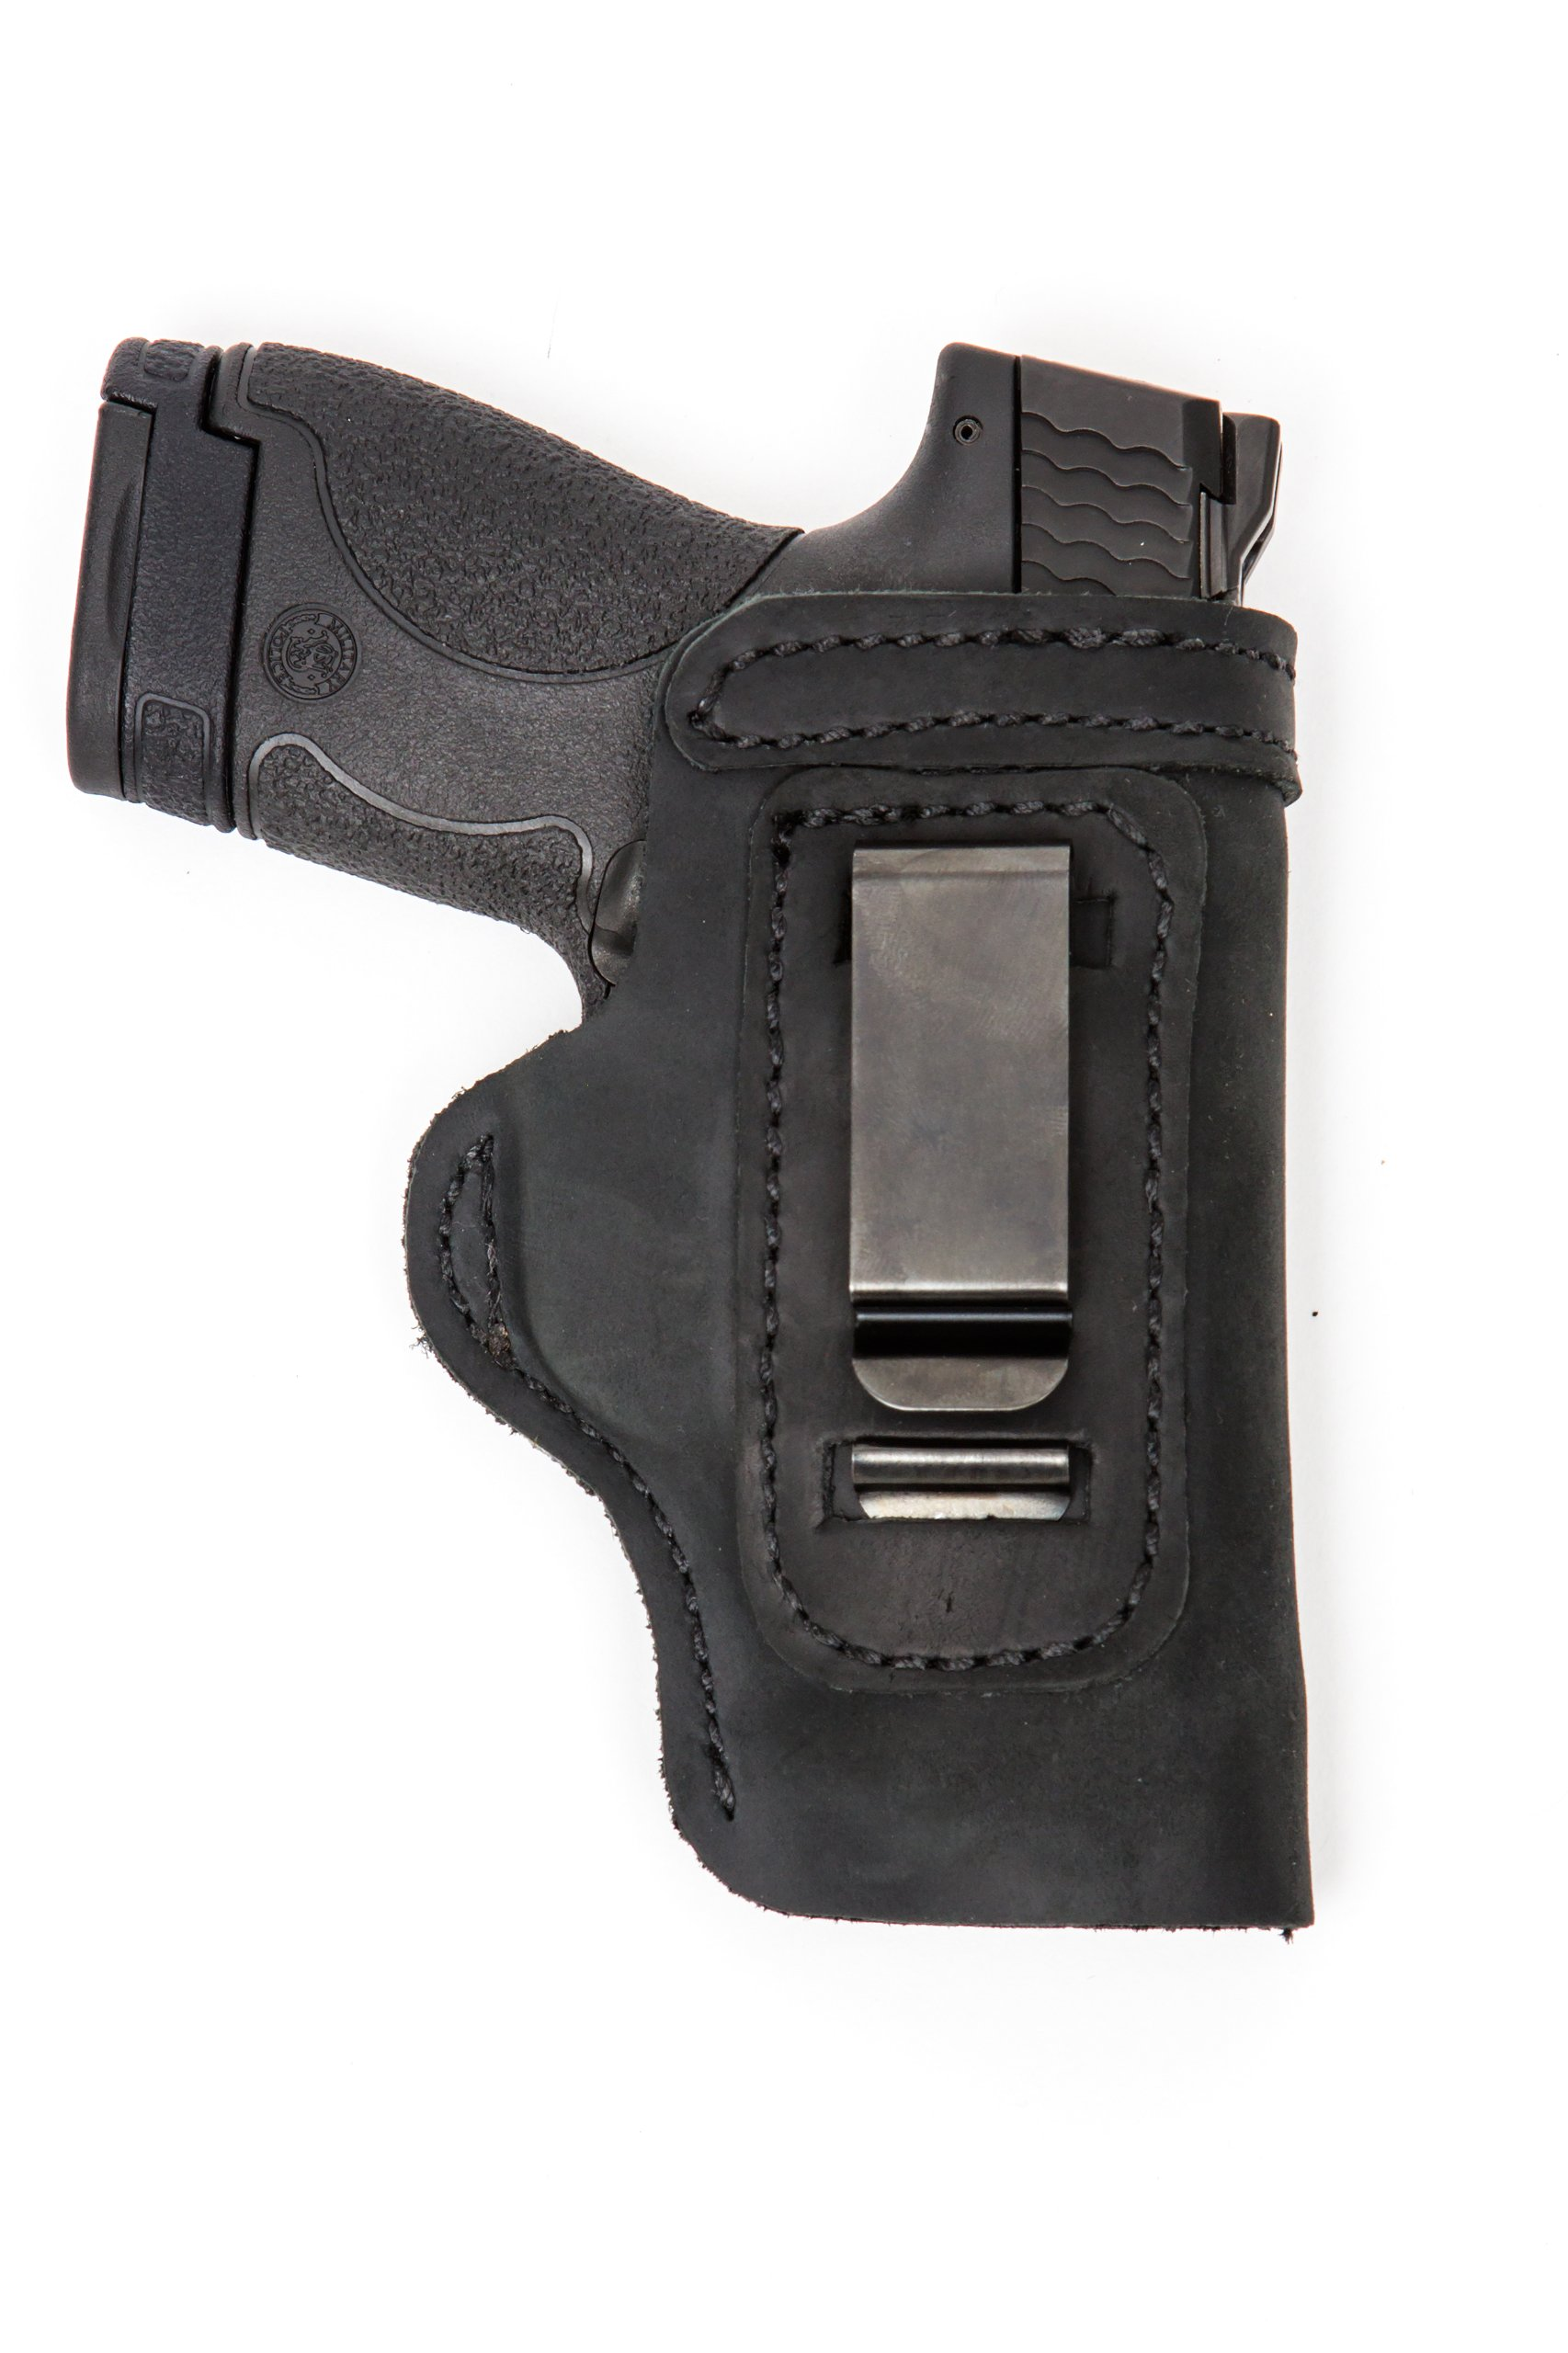 Glock Pro Carry LT CCW IWB Leather Gun Holster New Black